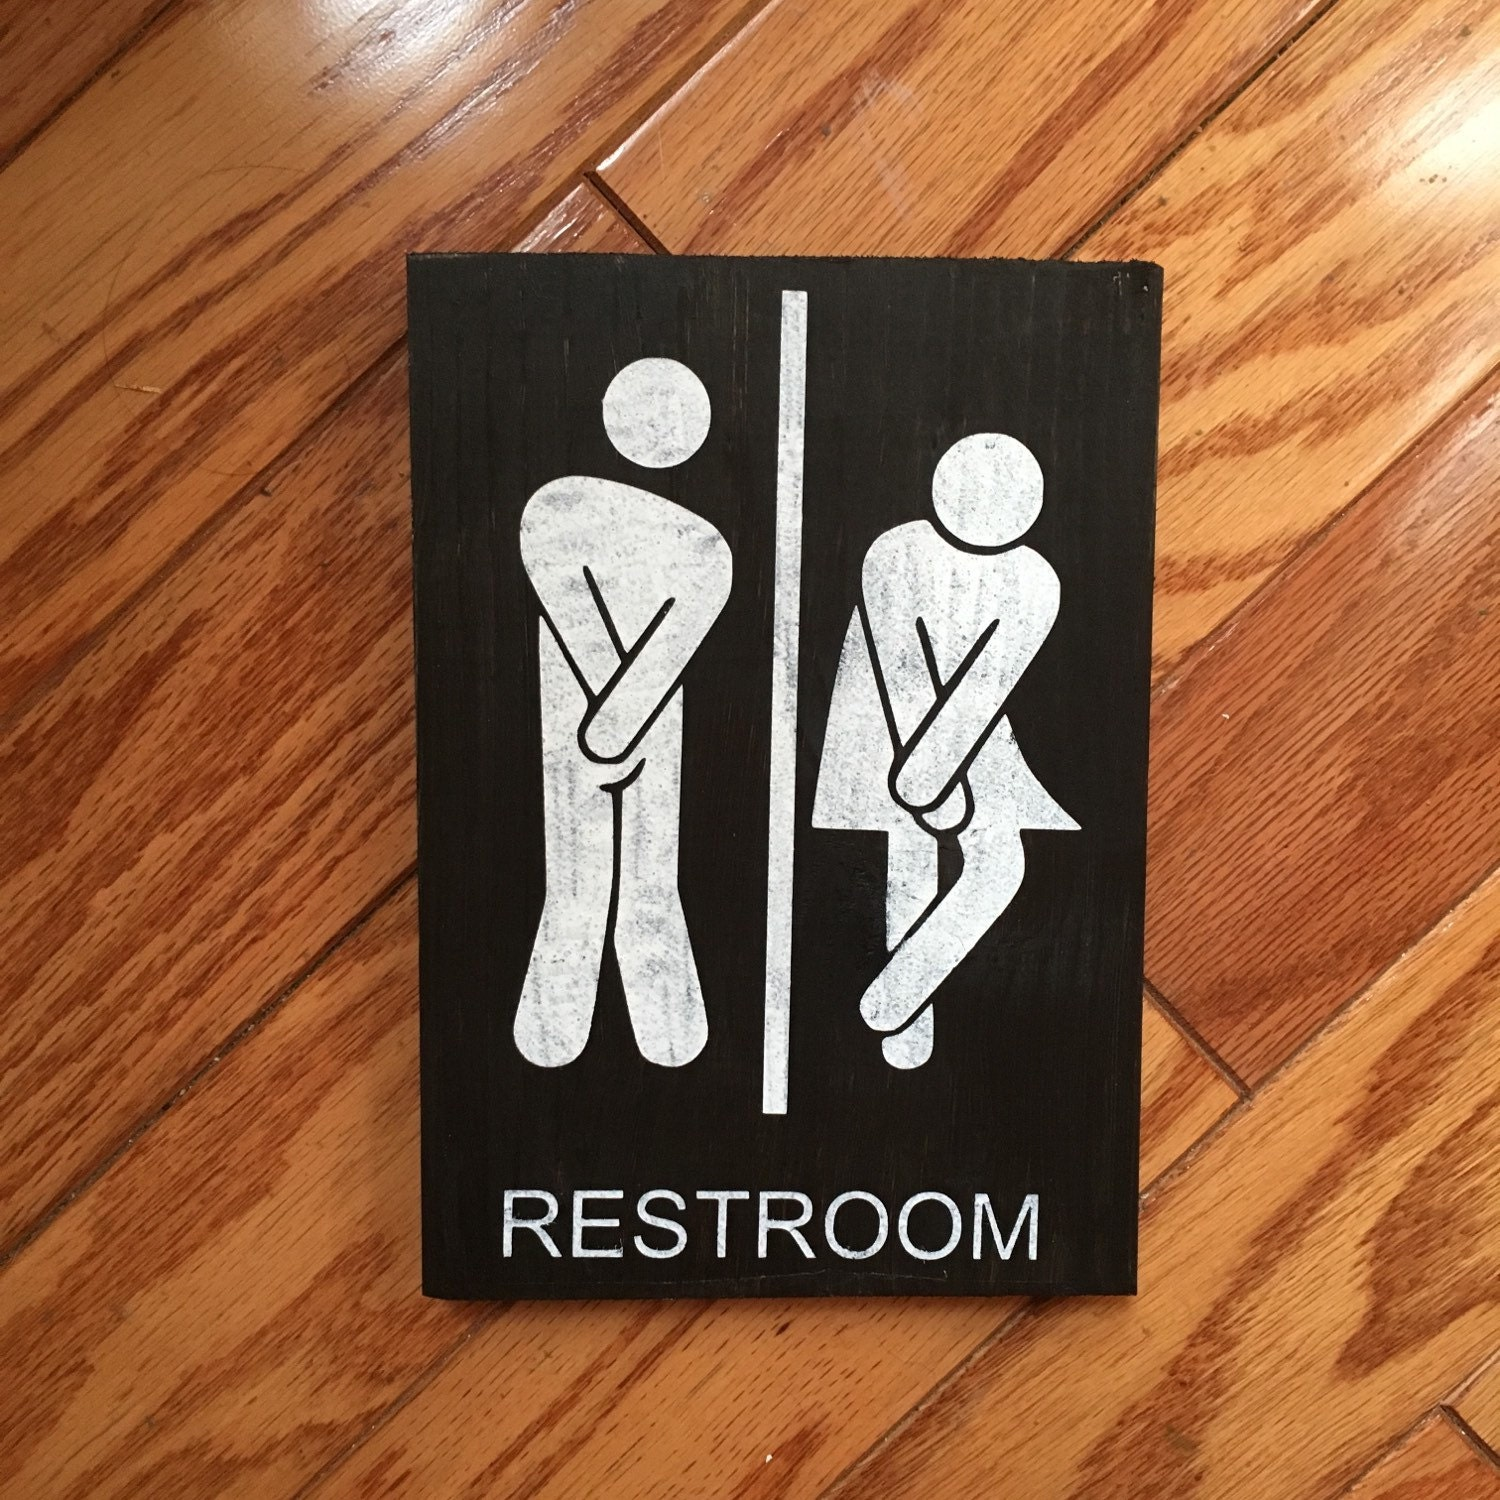 Restroom Sign Bathroom Sign Wood Bathroom Rustic Decor Male